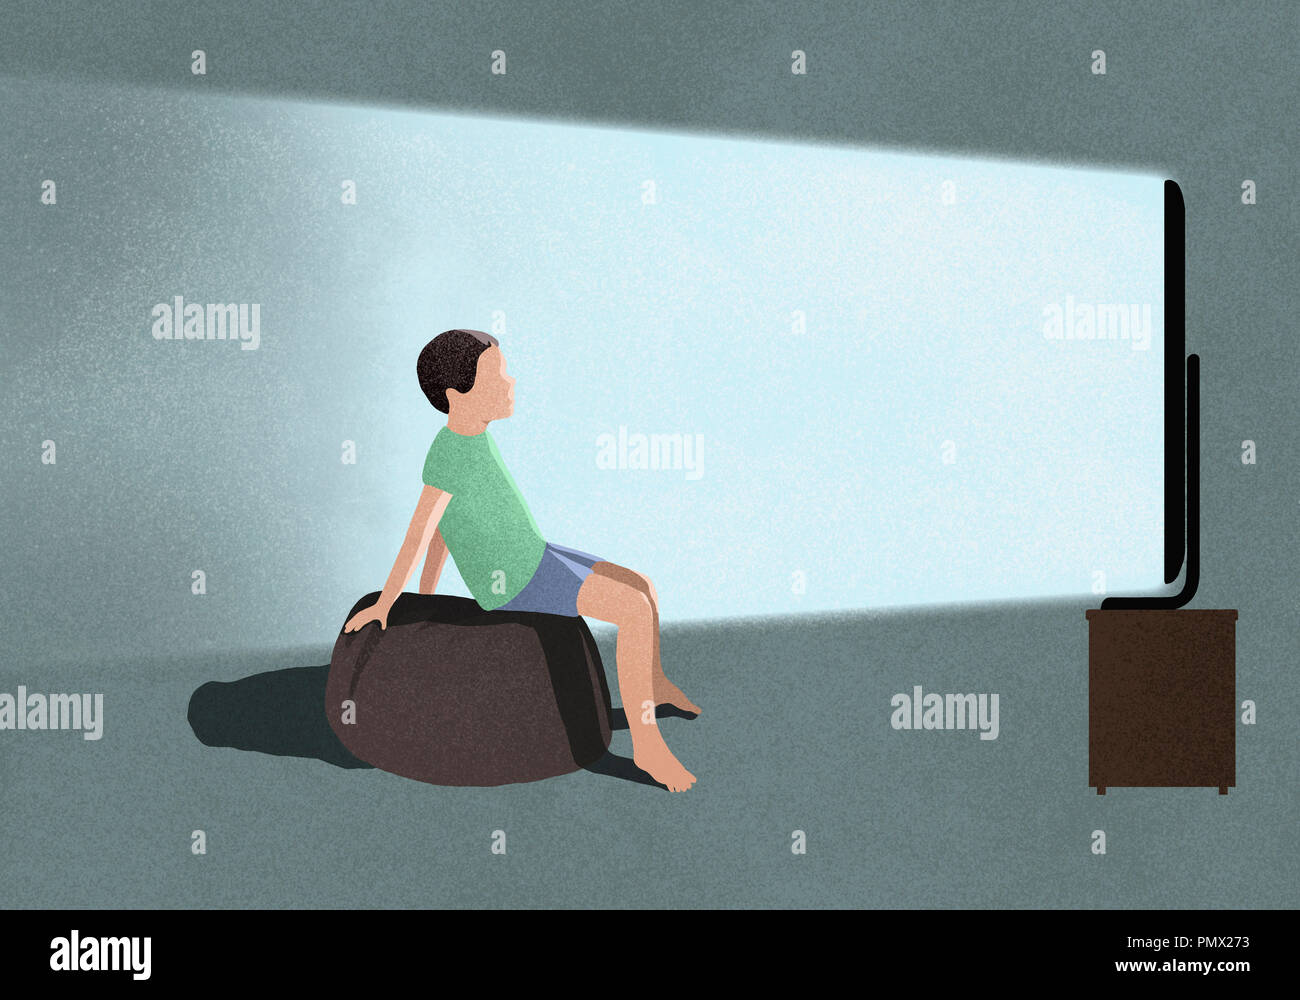 Boy watching TV - Stock Image